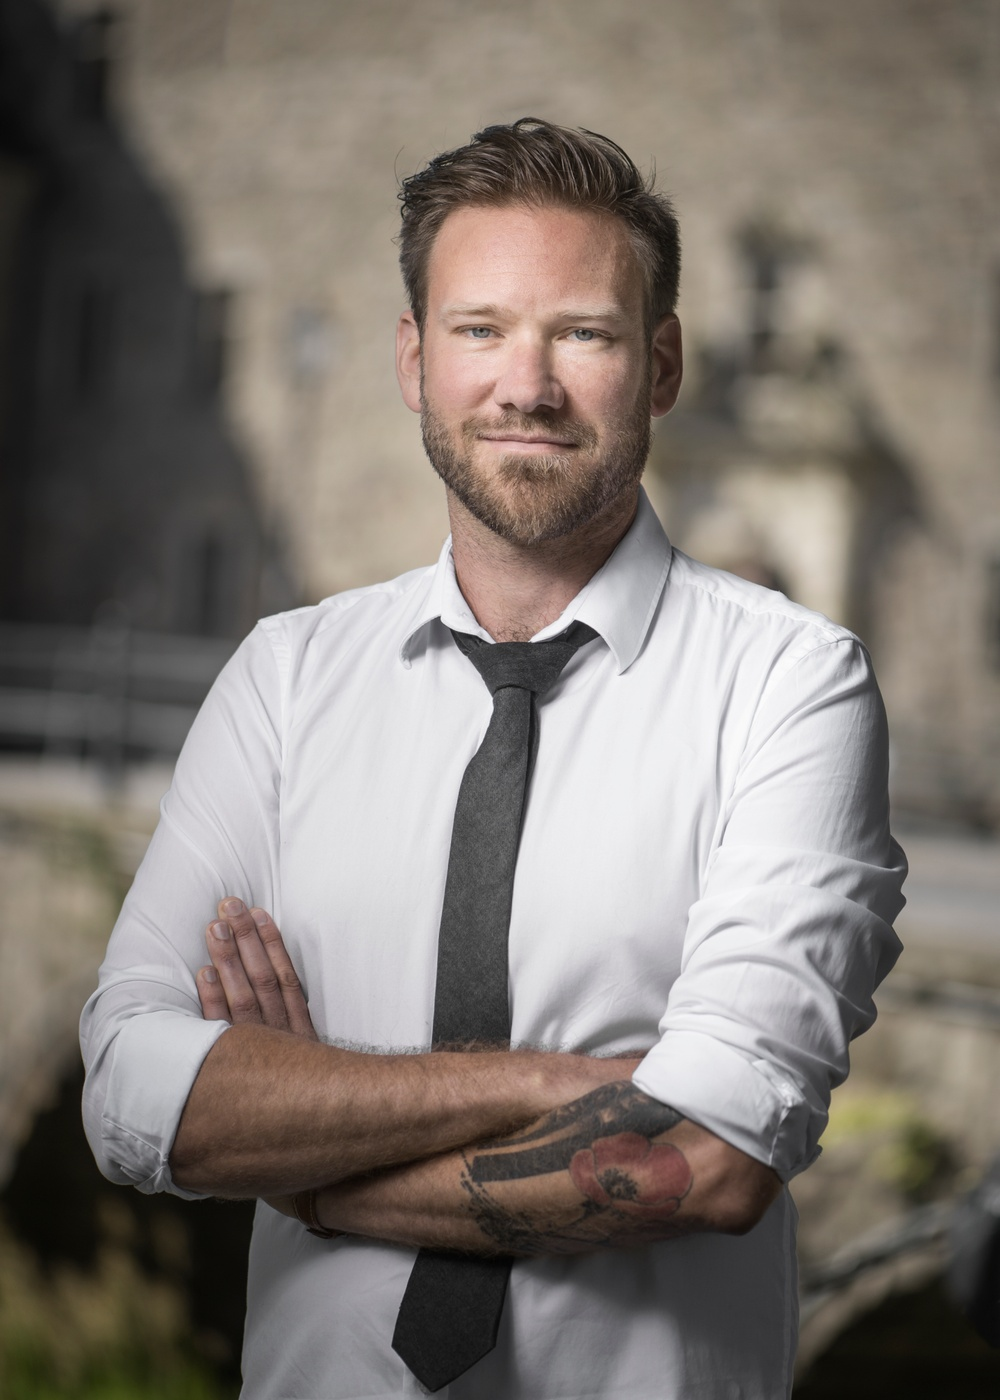 Mattias von Corswant, Founder and CMO at wec360°